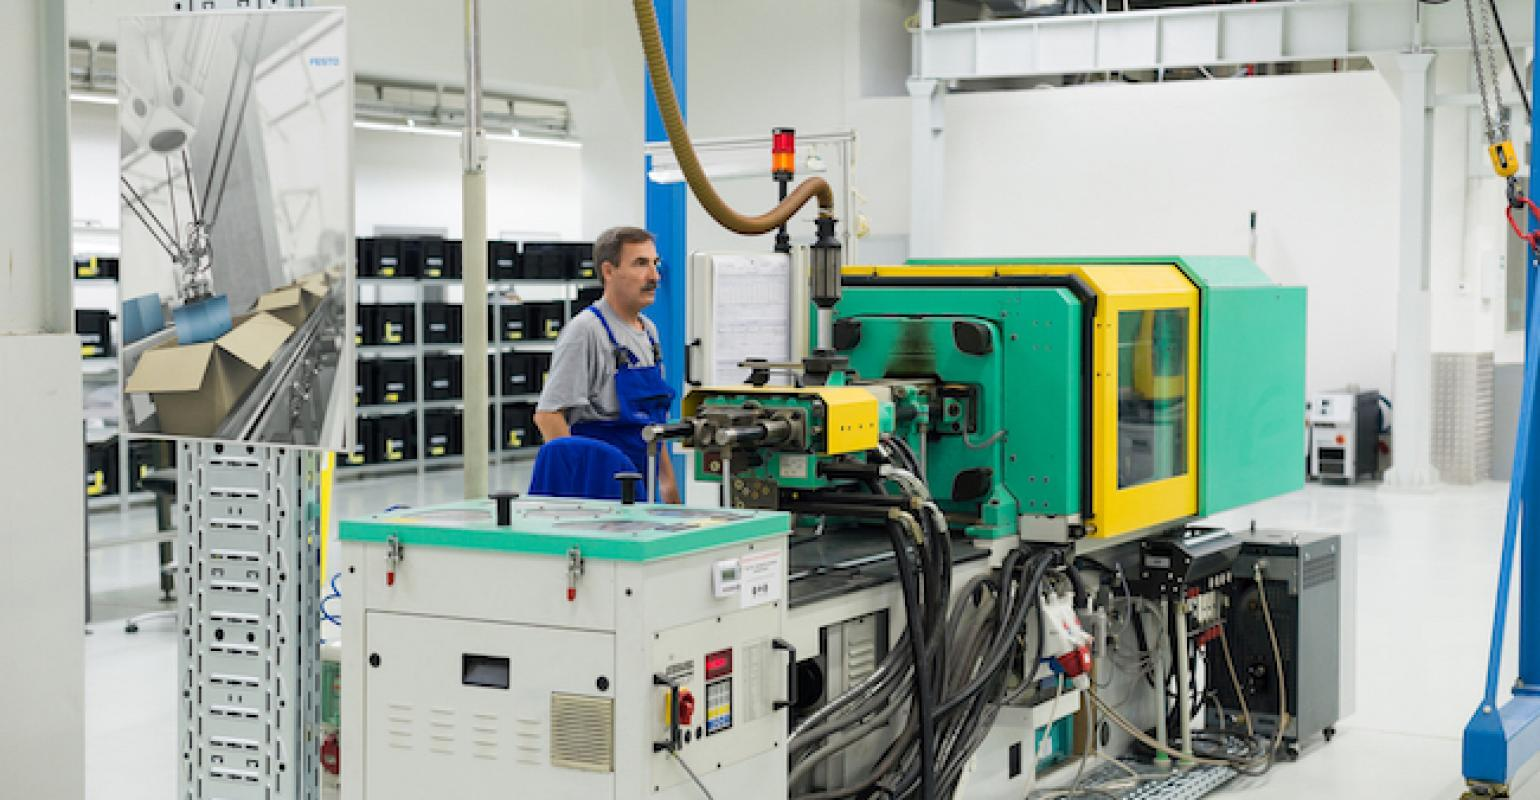 How to streamline plastic injection mold qualification and process val |  plasticstoday.com